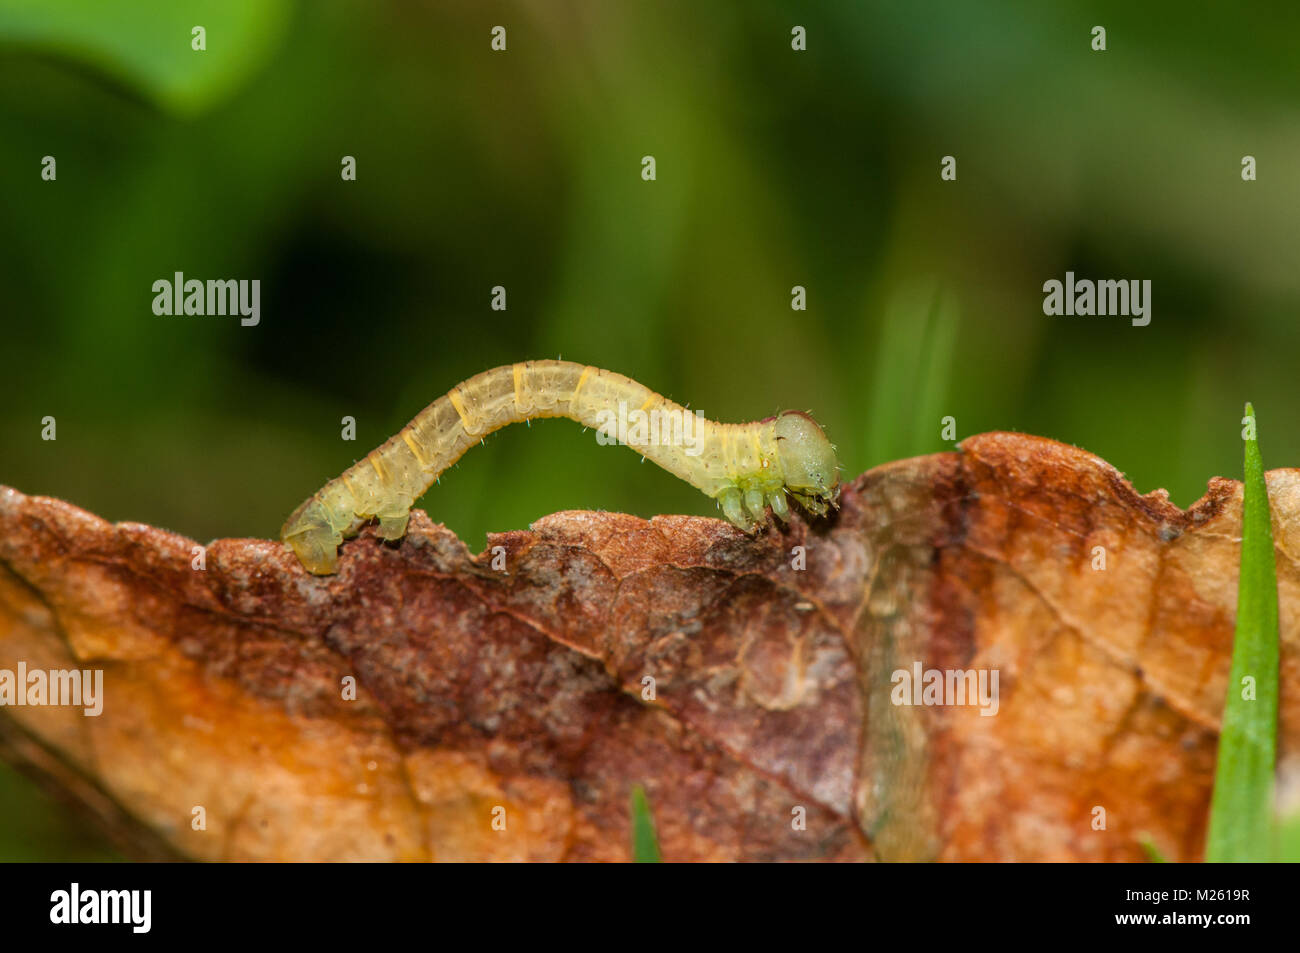 caterpillar on top of a leaf, Banyoles, Catalonia, Spain - Stock Image